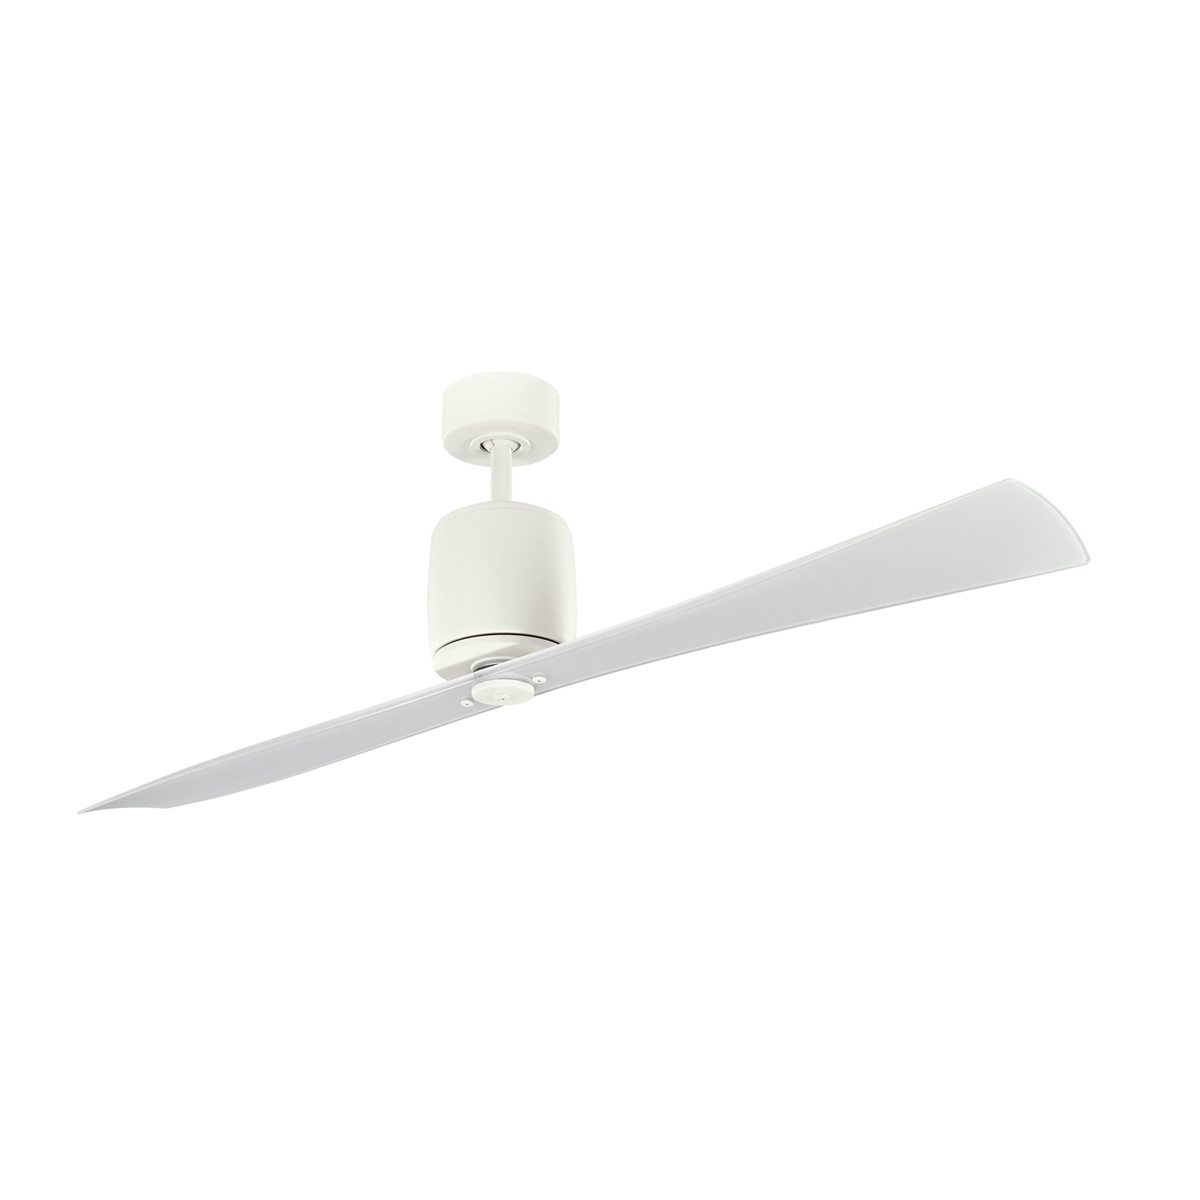 Terra 60 Inch Ceiling Fan By Kichler Ylighting Light Kit